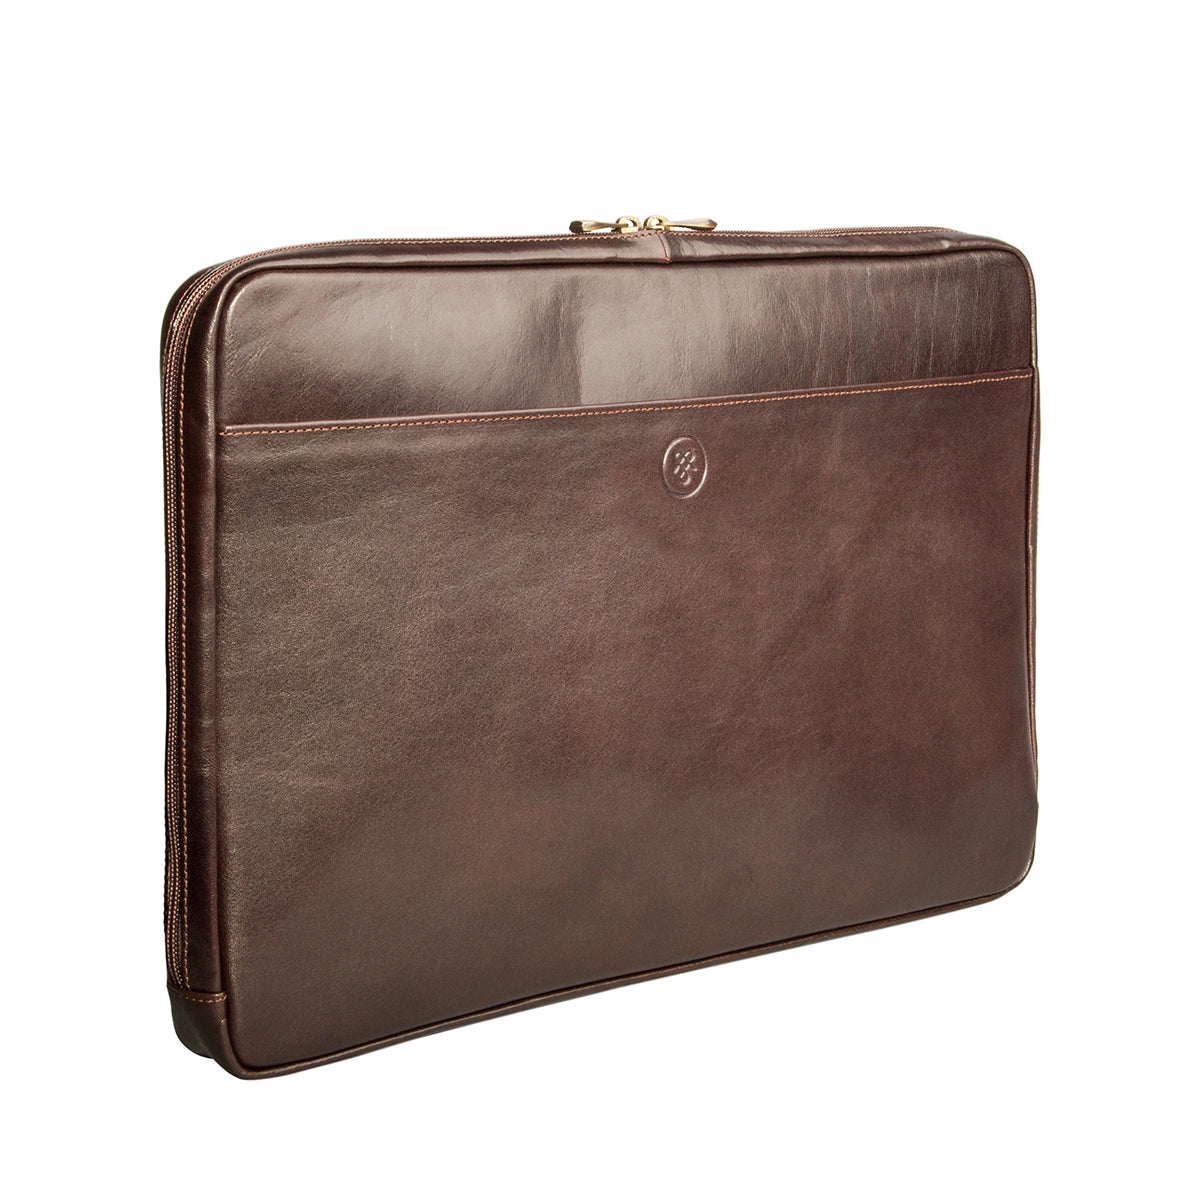 Image 1 of the 'Davoli' 17 Inch Brown Veg-Tanned Leather Laptop Bag